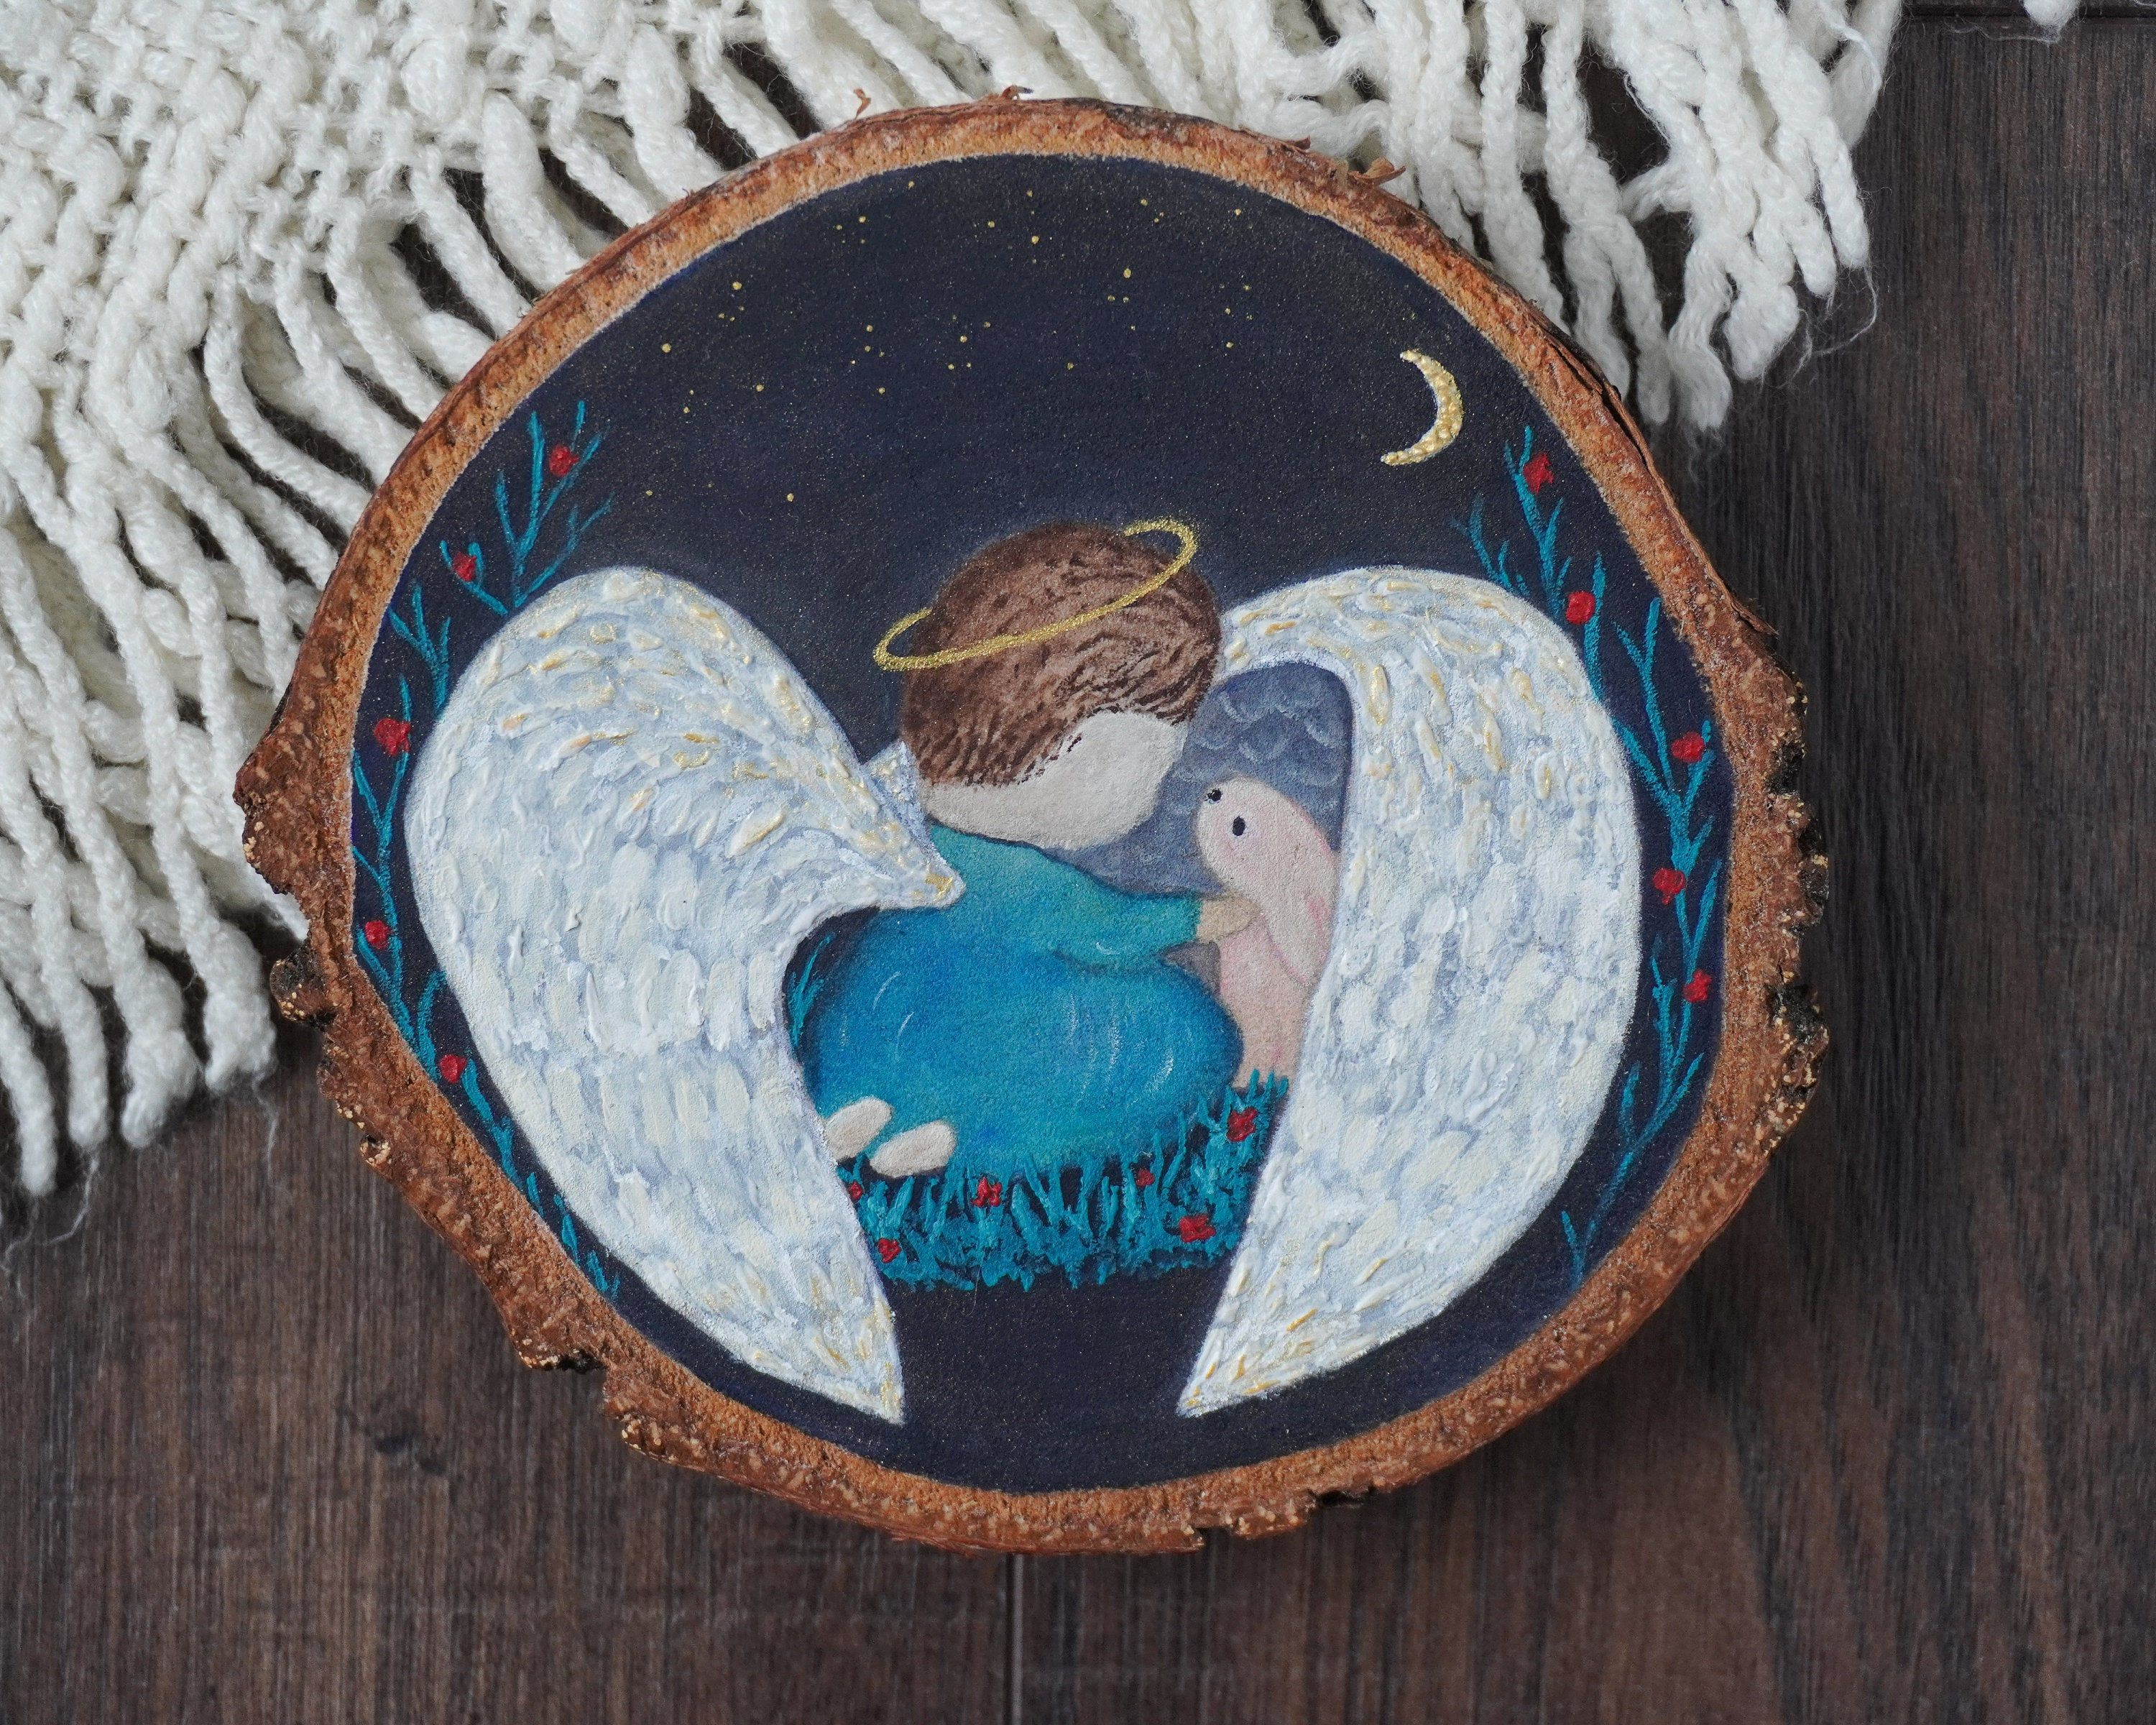 Painting Of Angel And Bunny On Wood Angel Painting Painting Etsy Angel Painting Magical Paintings Painting